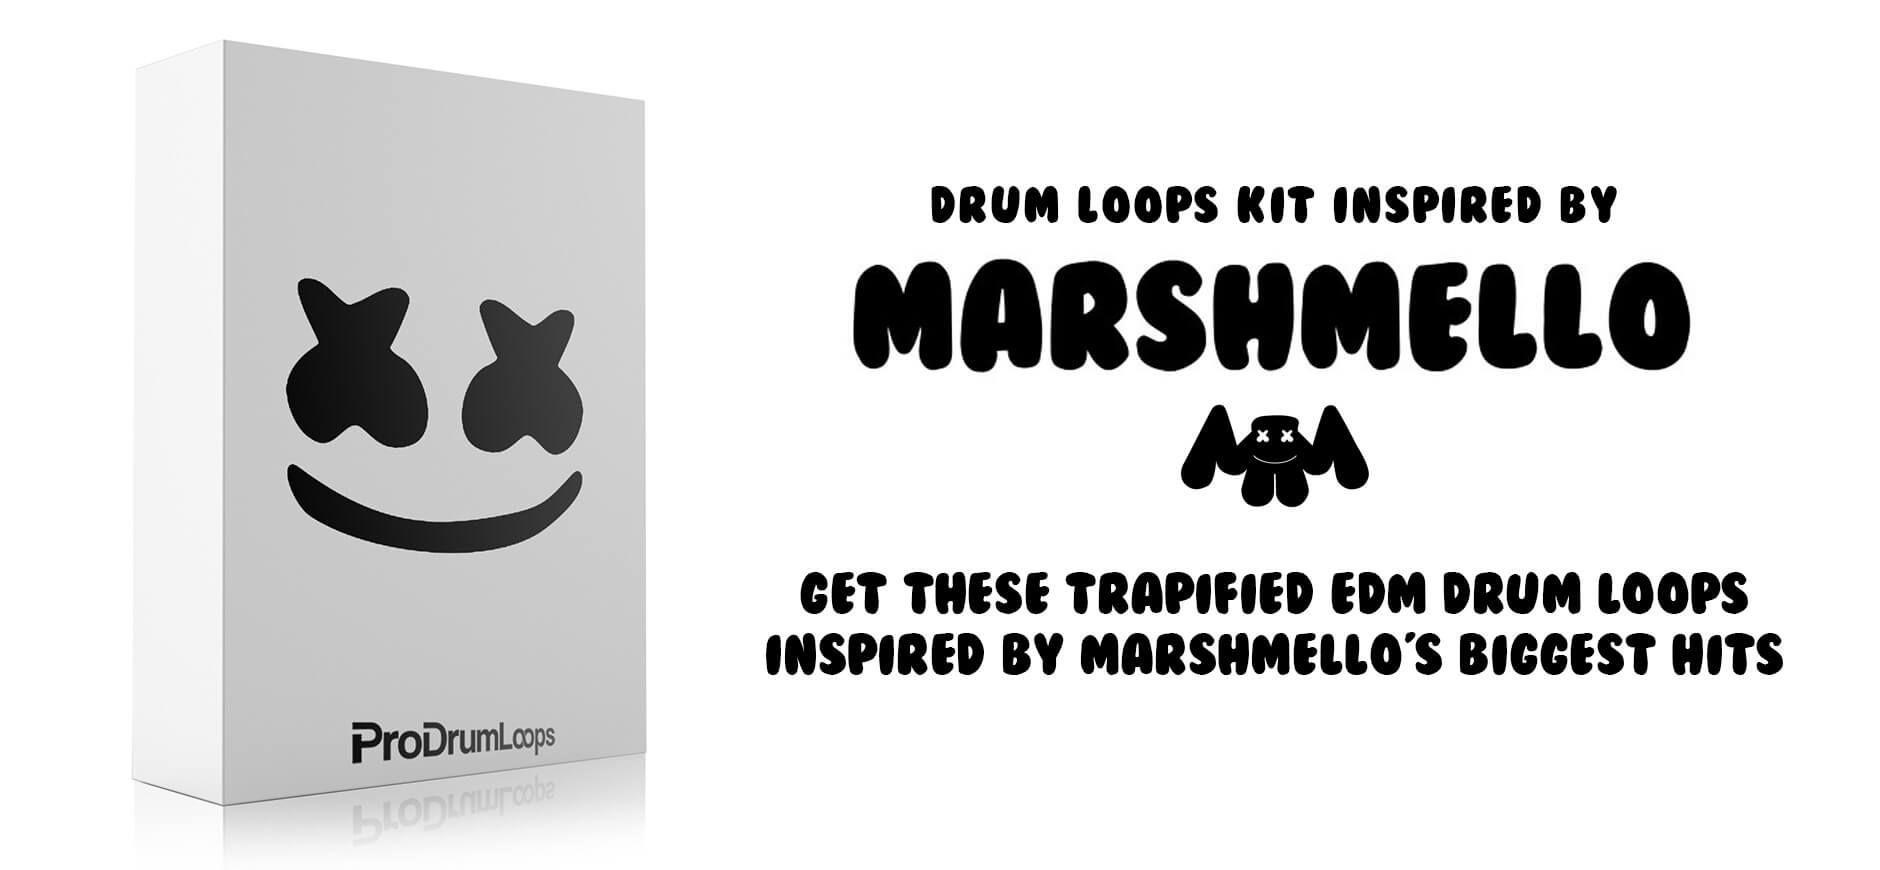 Marshmello Drum Loops Kit